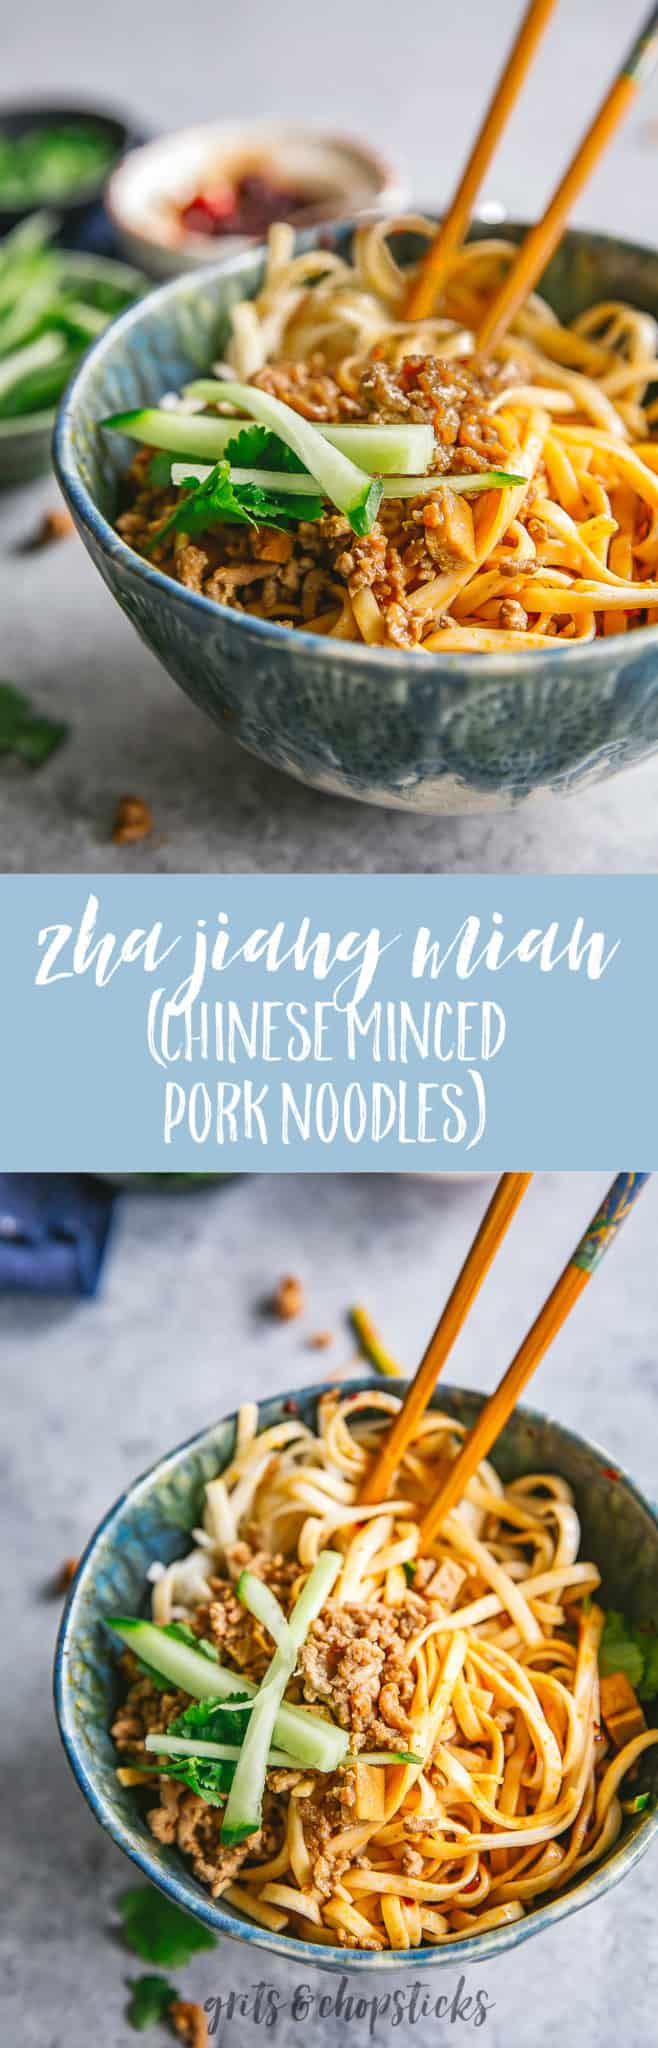 Try your hand at making zha jiang mian (Chinese minced pork noodles) -- it's like Chinese spaghetti! Recipe and blog post